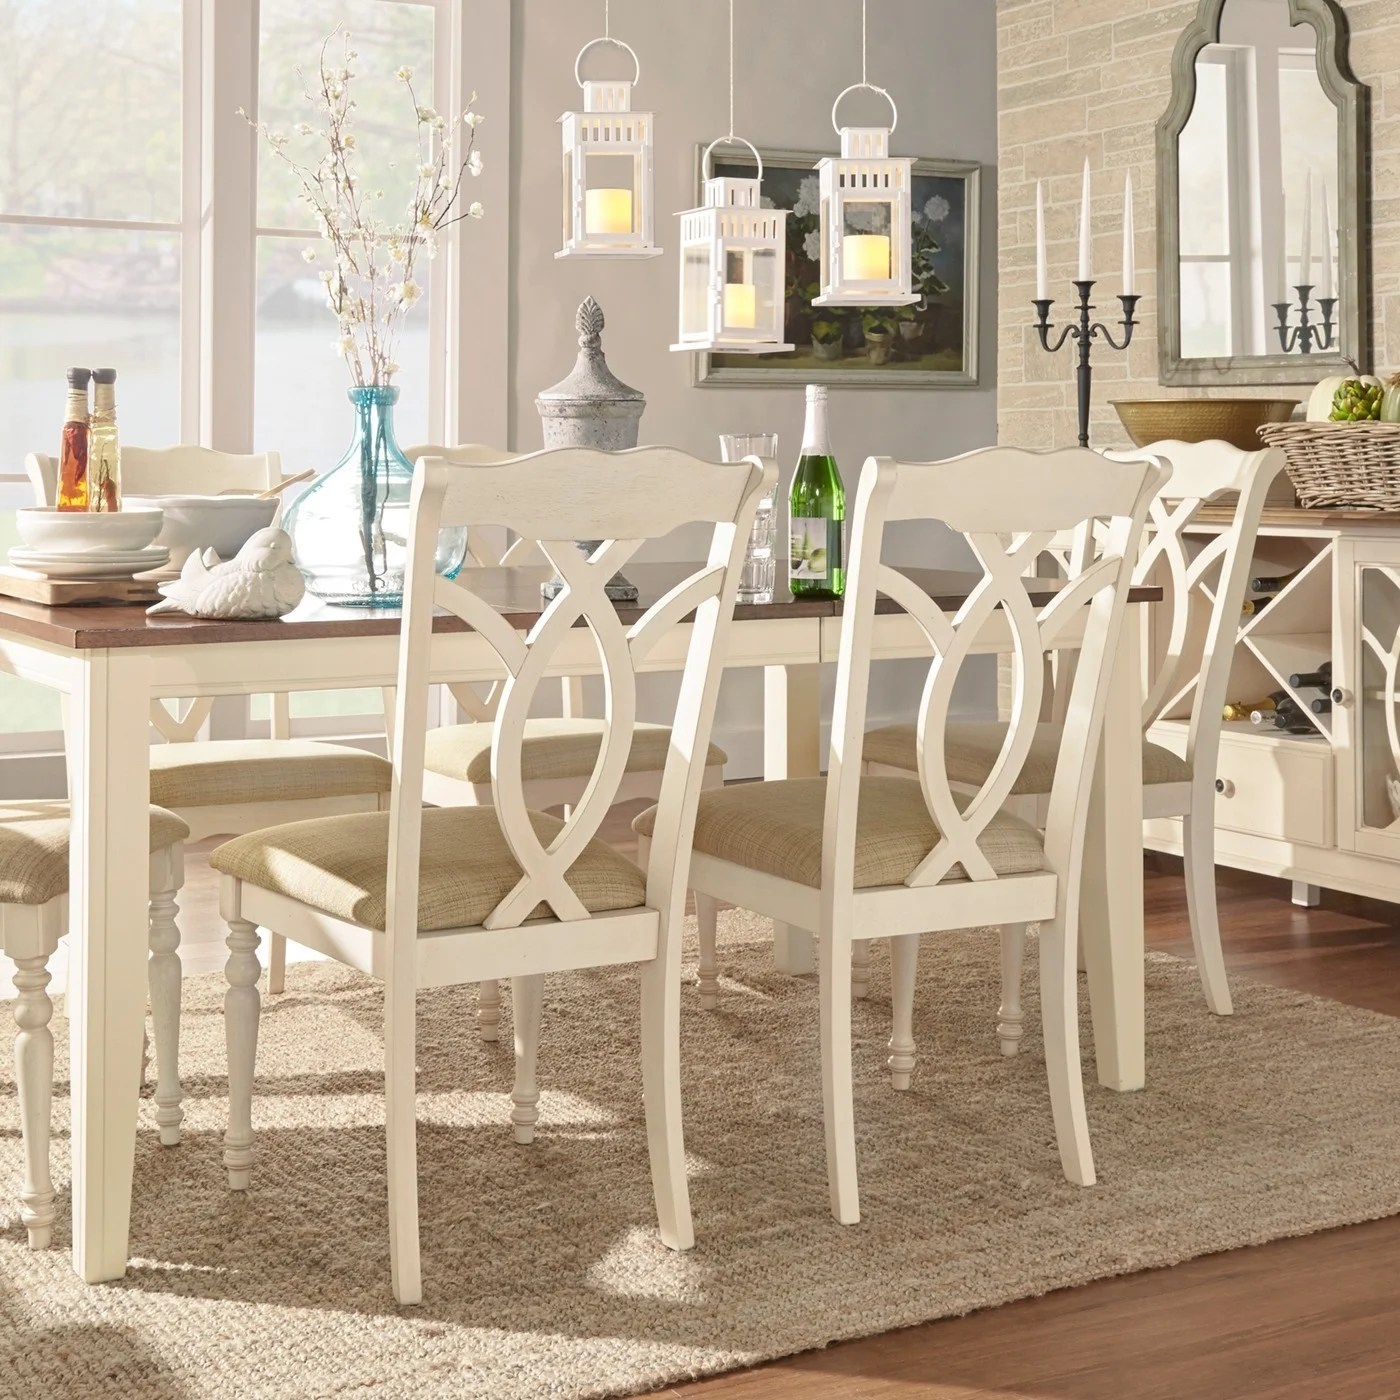 Antique White Dining Chairs Shayne Country Antique White Beige Dining Chairs Set Of 2 By Inspire Q Classic